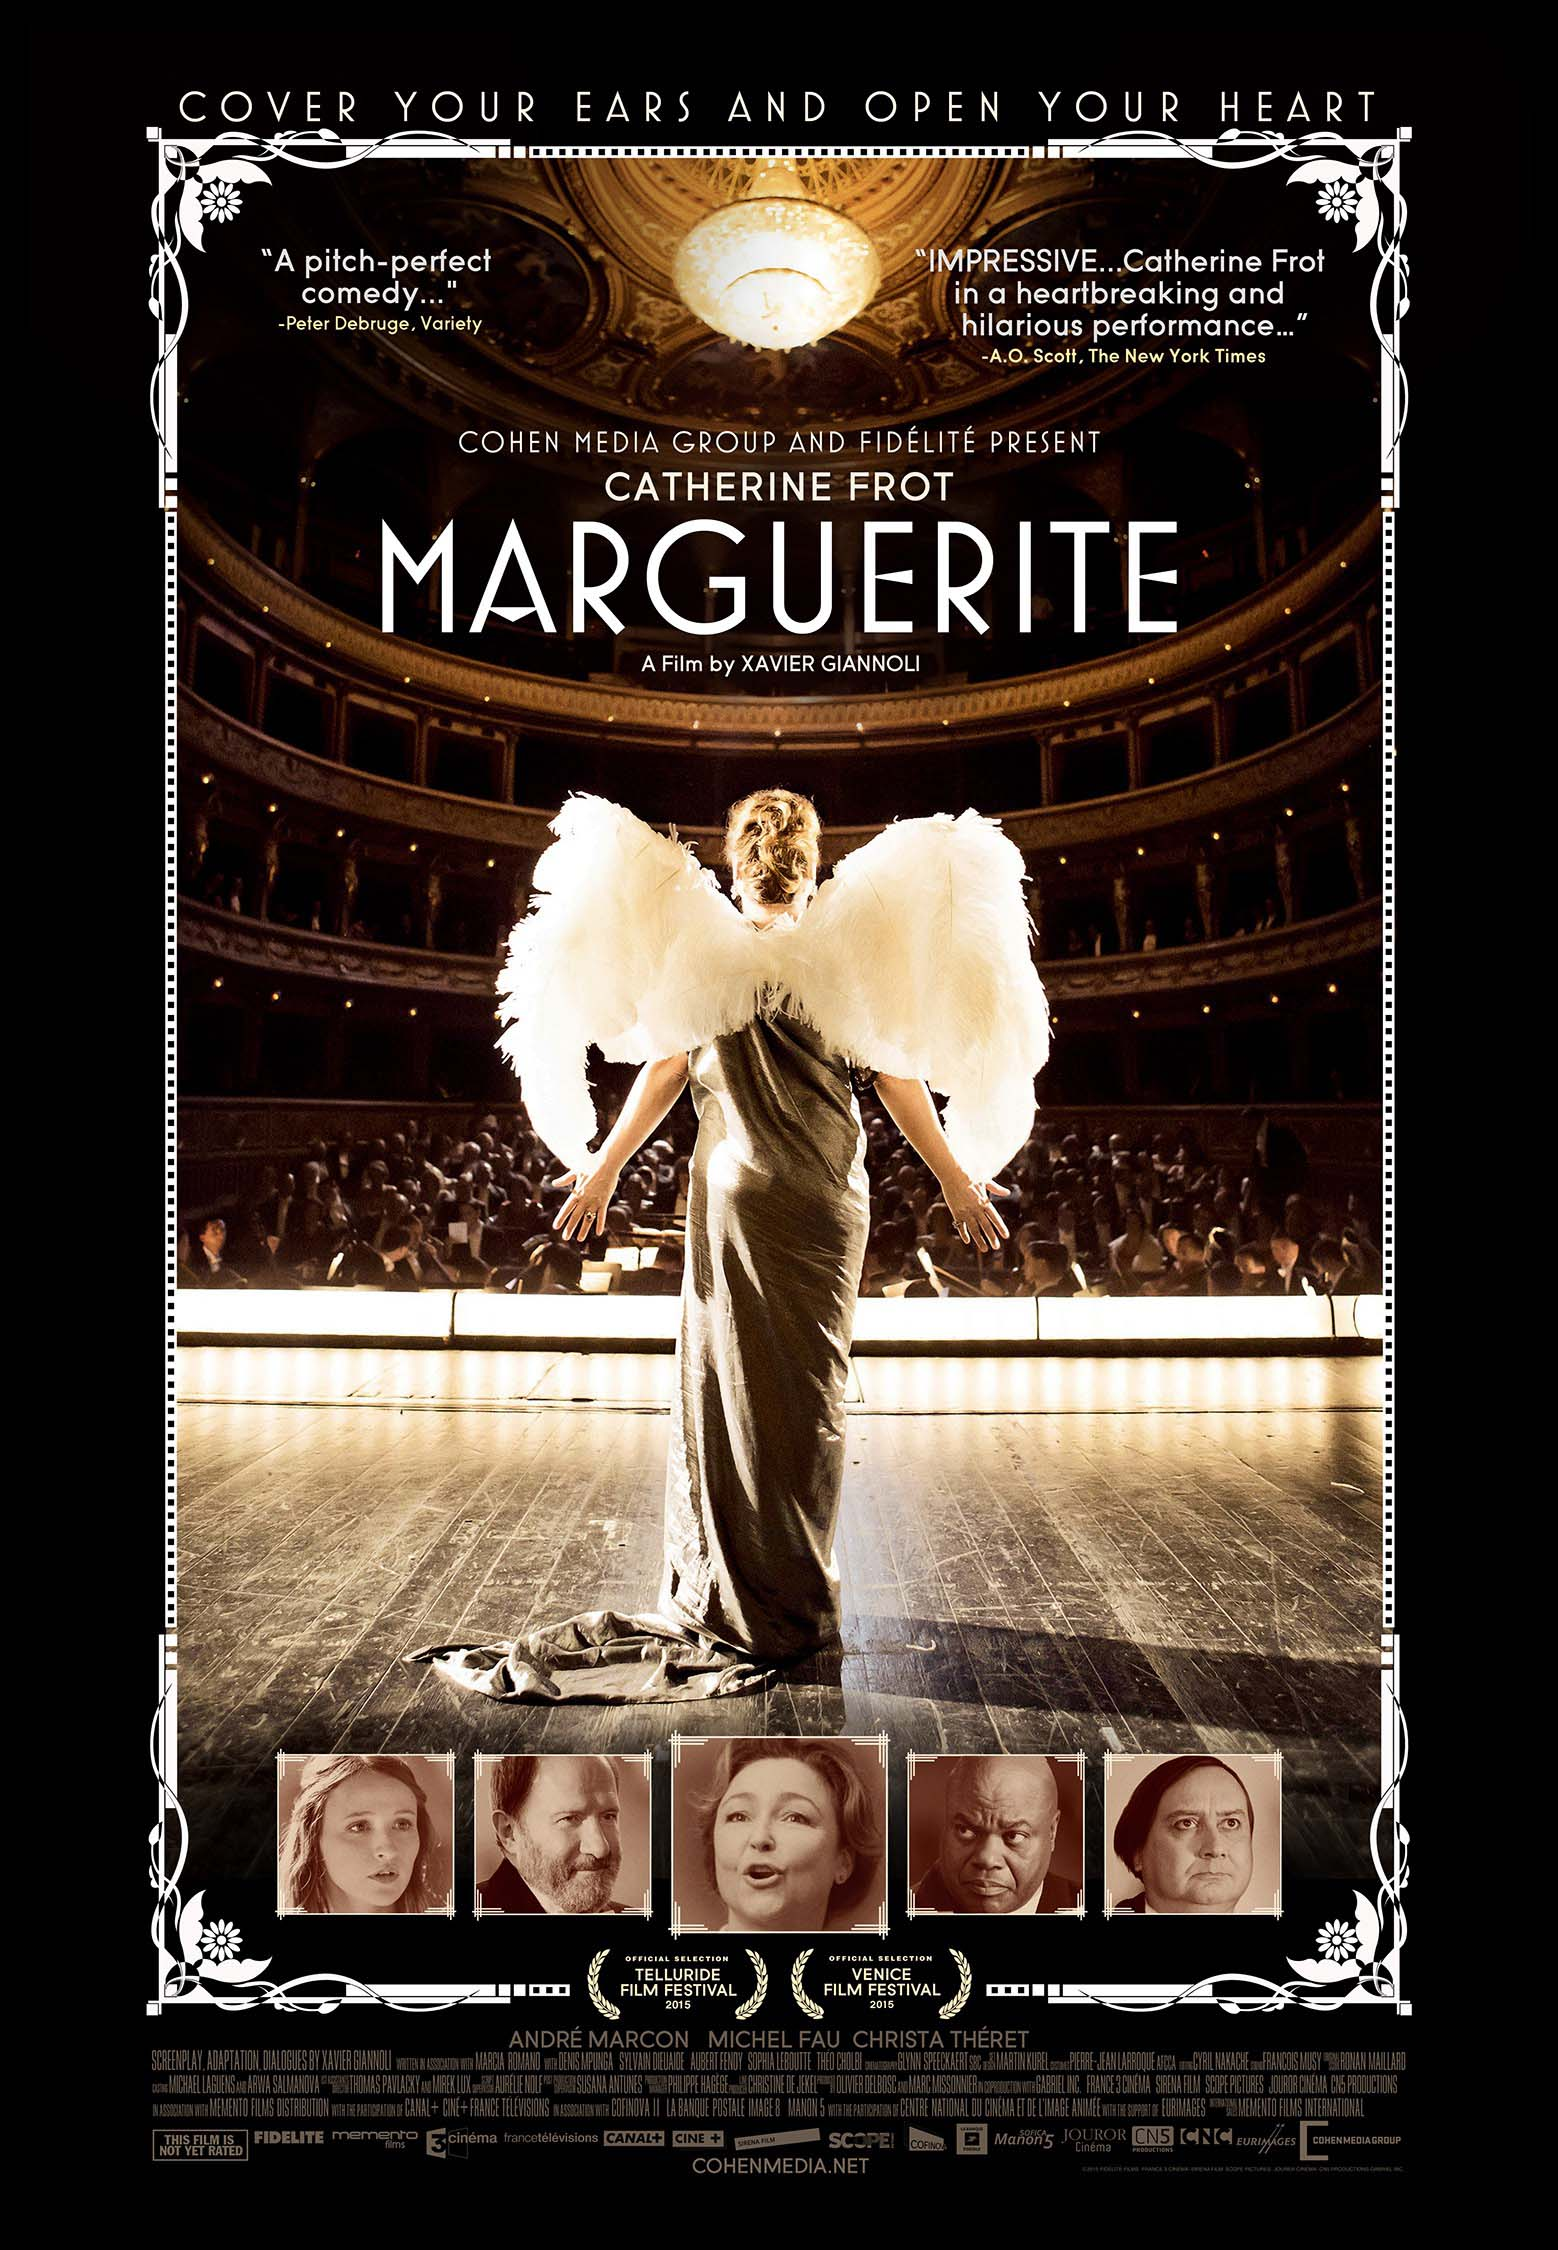 movieposter_marguerite compressed